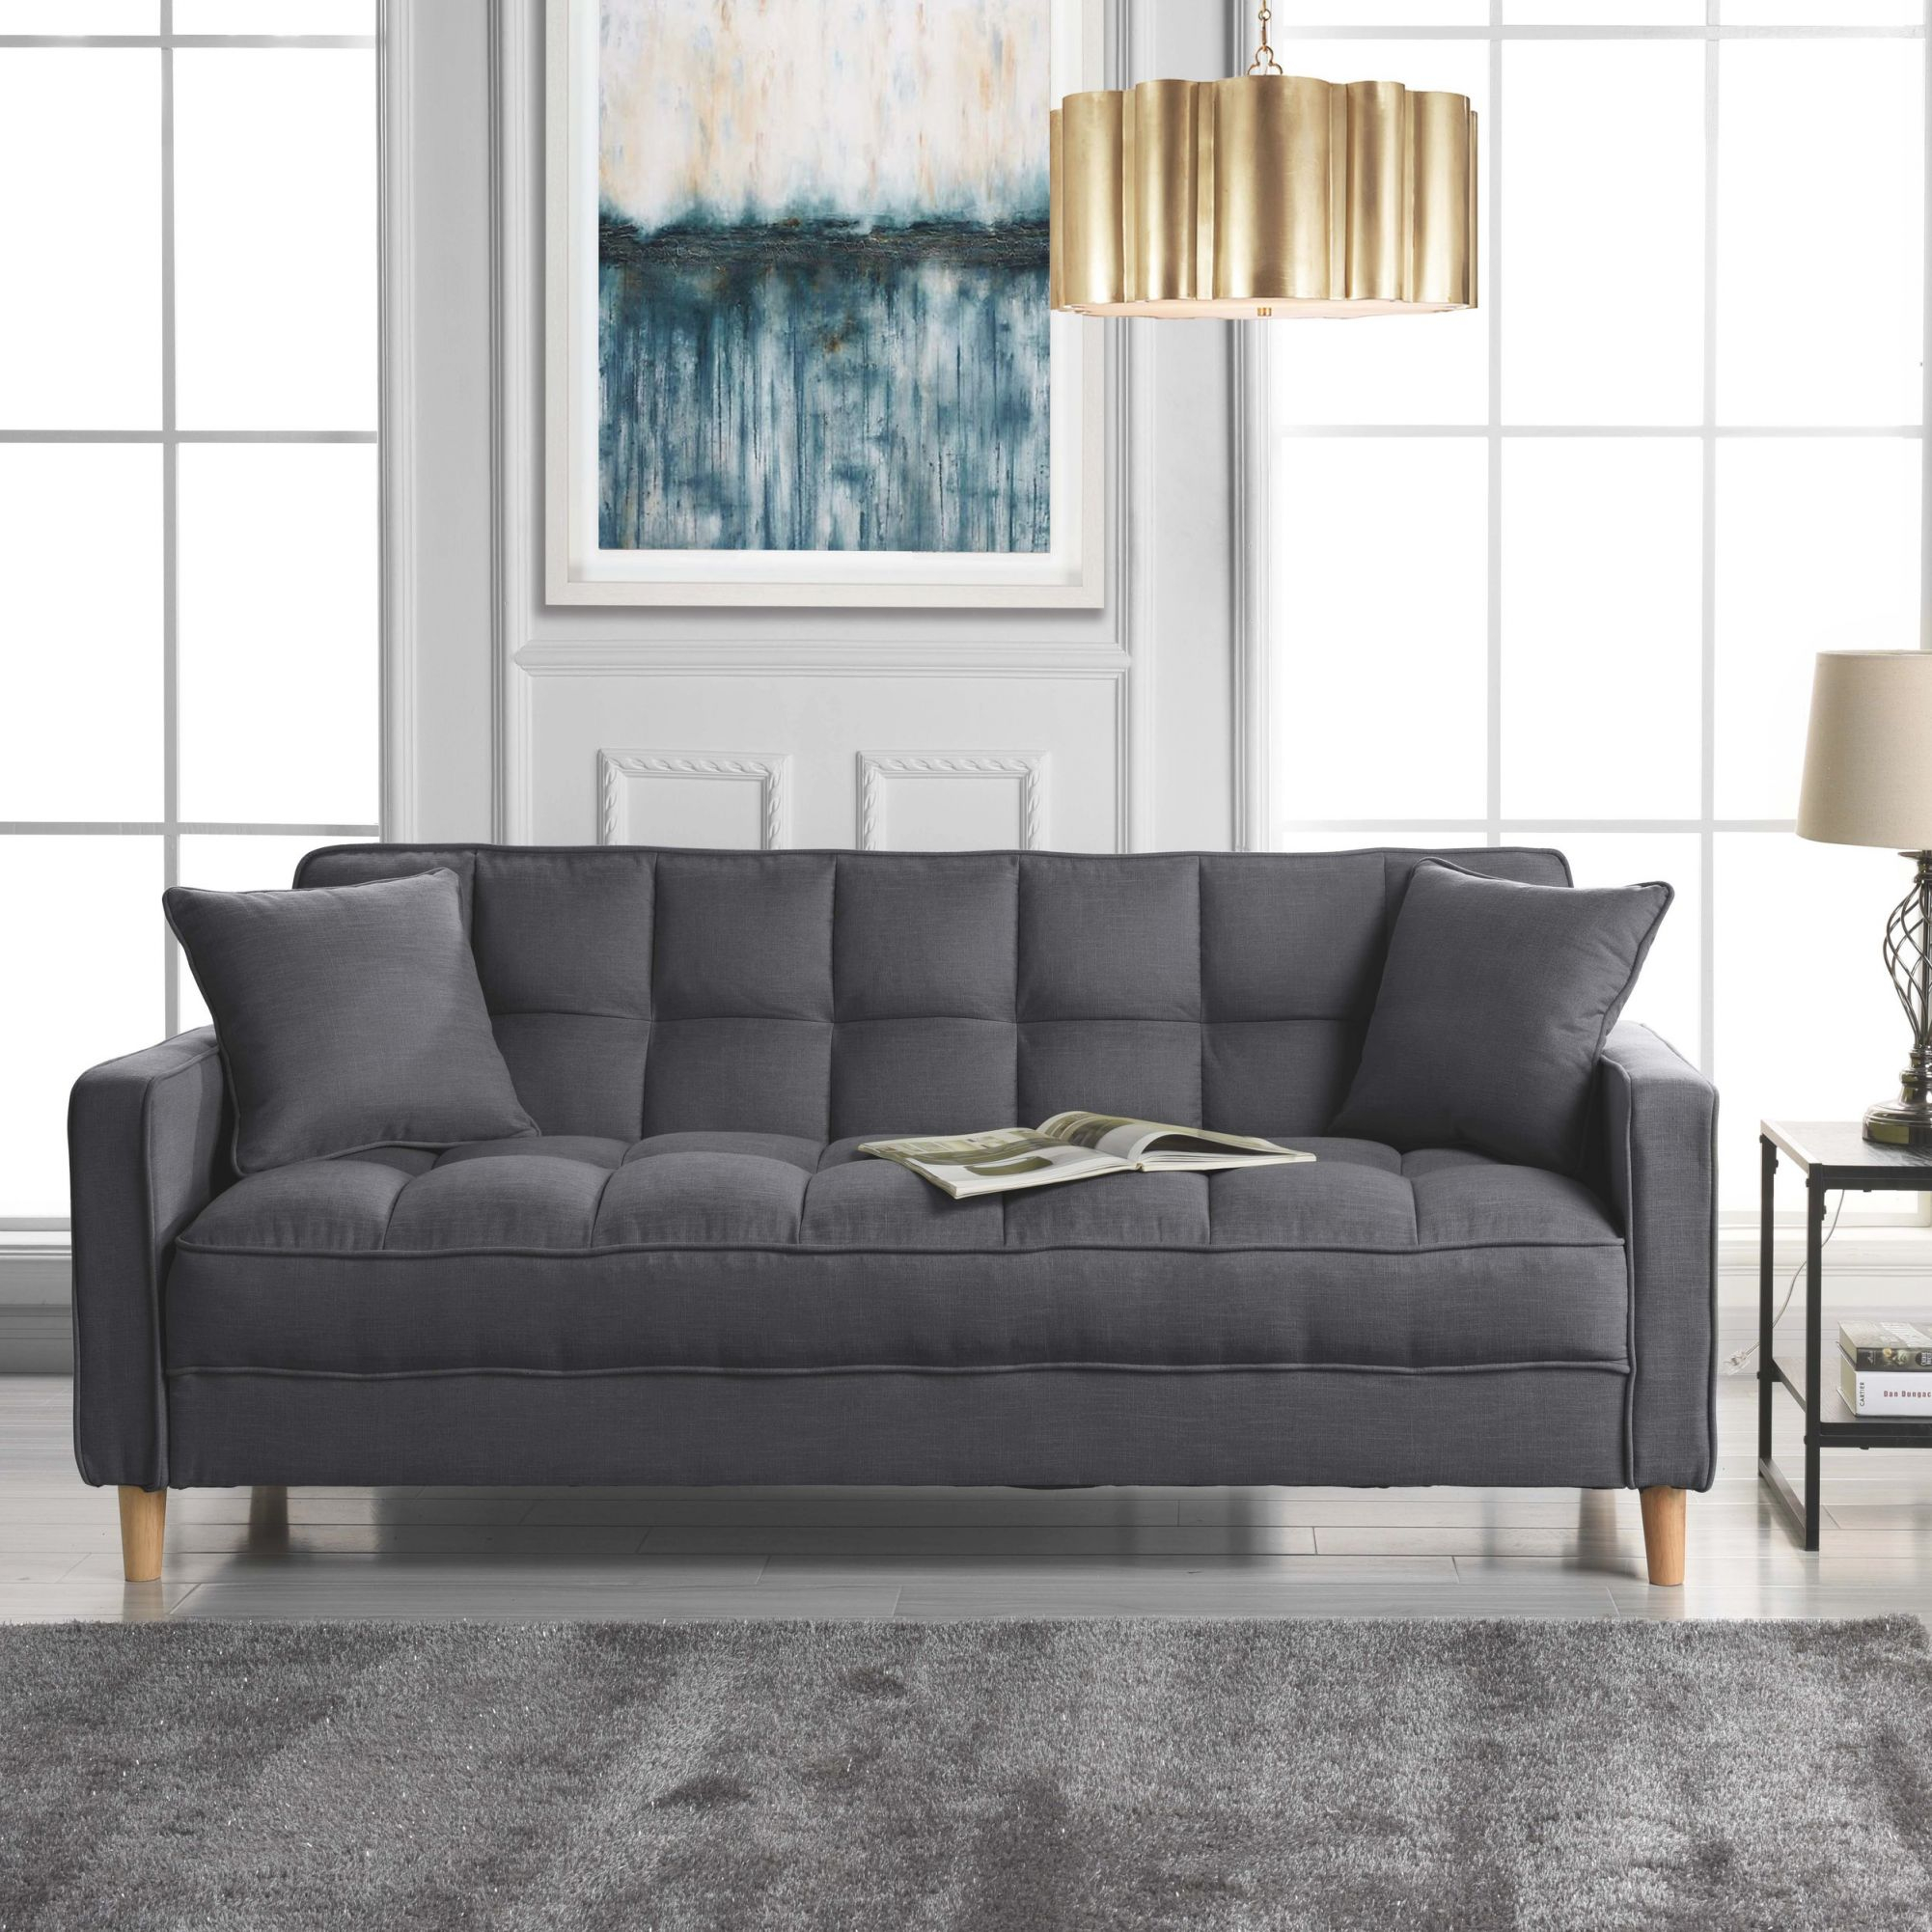 Details About Classic Fabric Couch Tufted Small Space Living Room Sofa, Natural Legs, Grey regarding Awesome Small Space Living Room Furniture